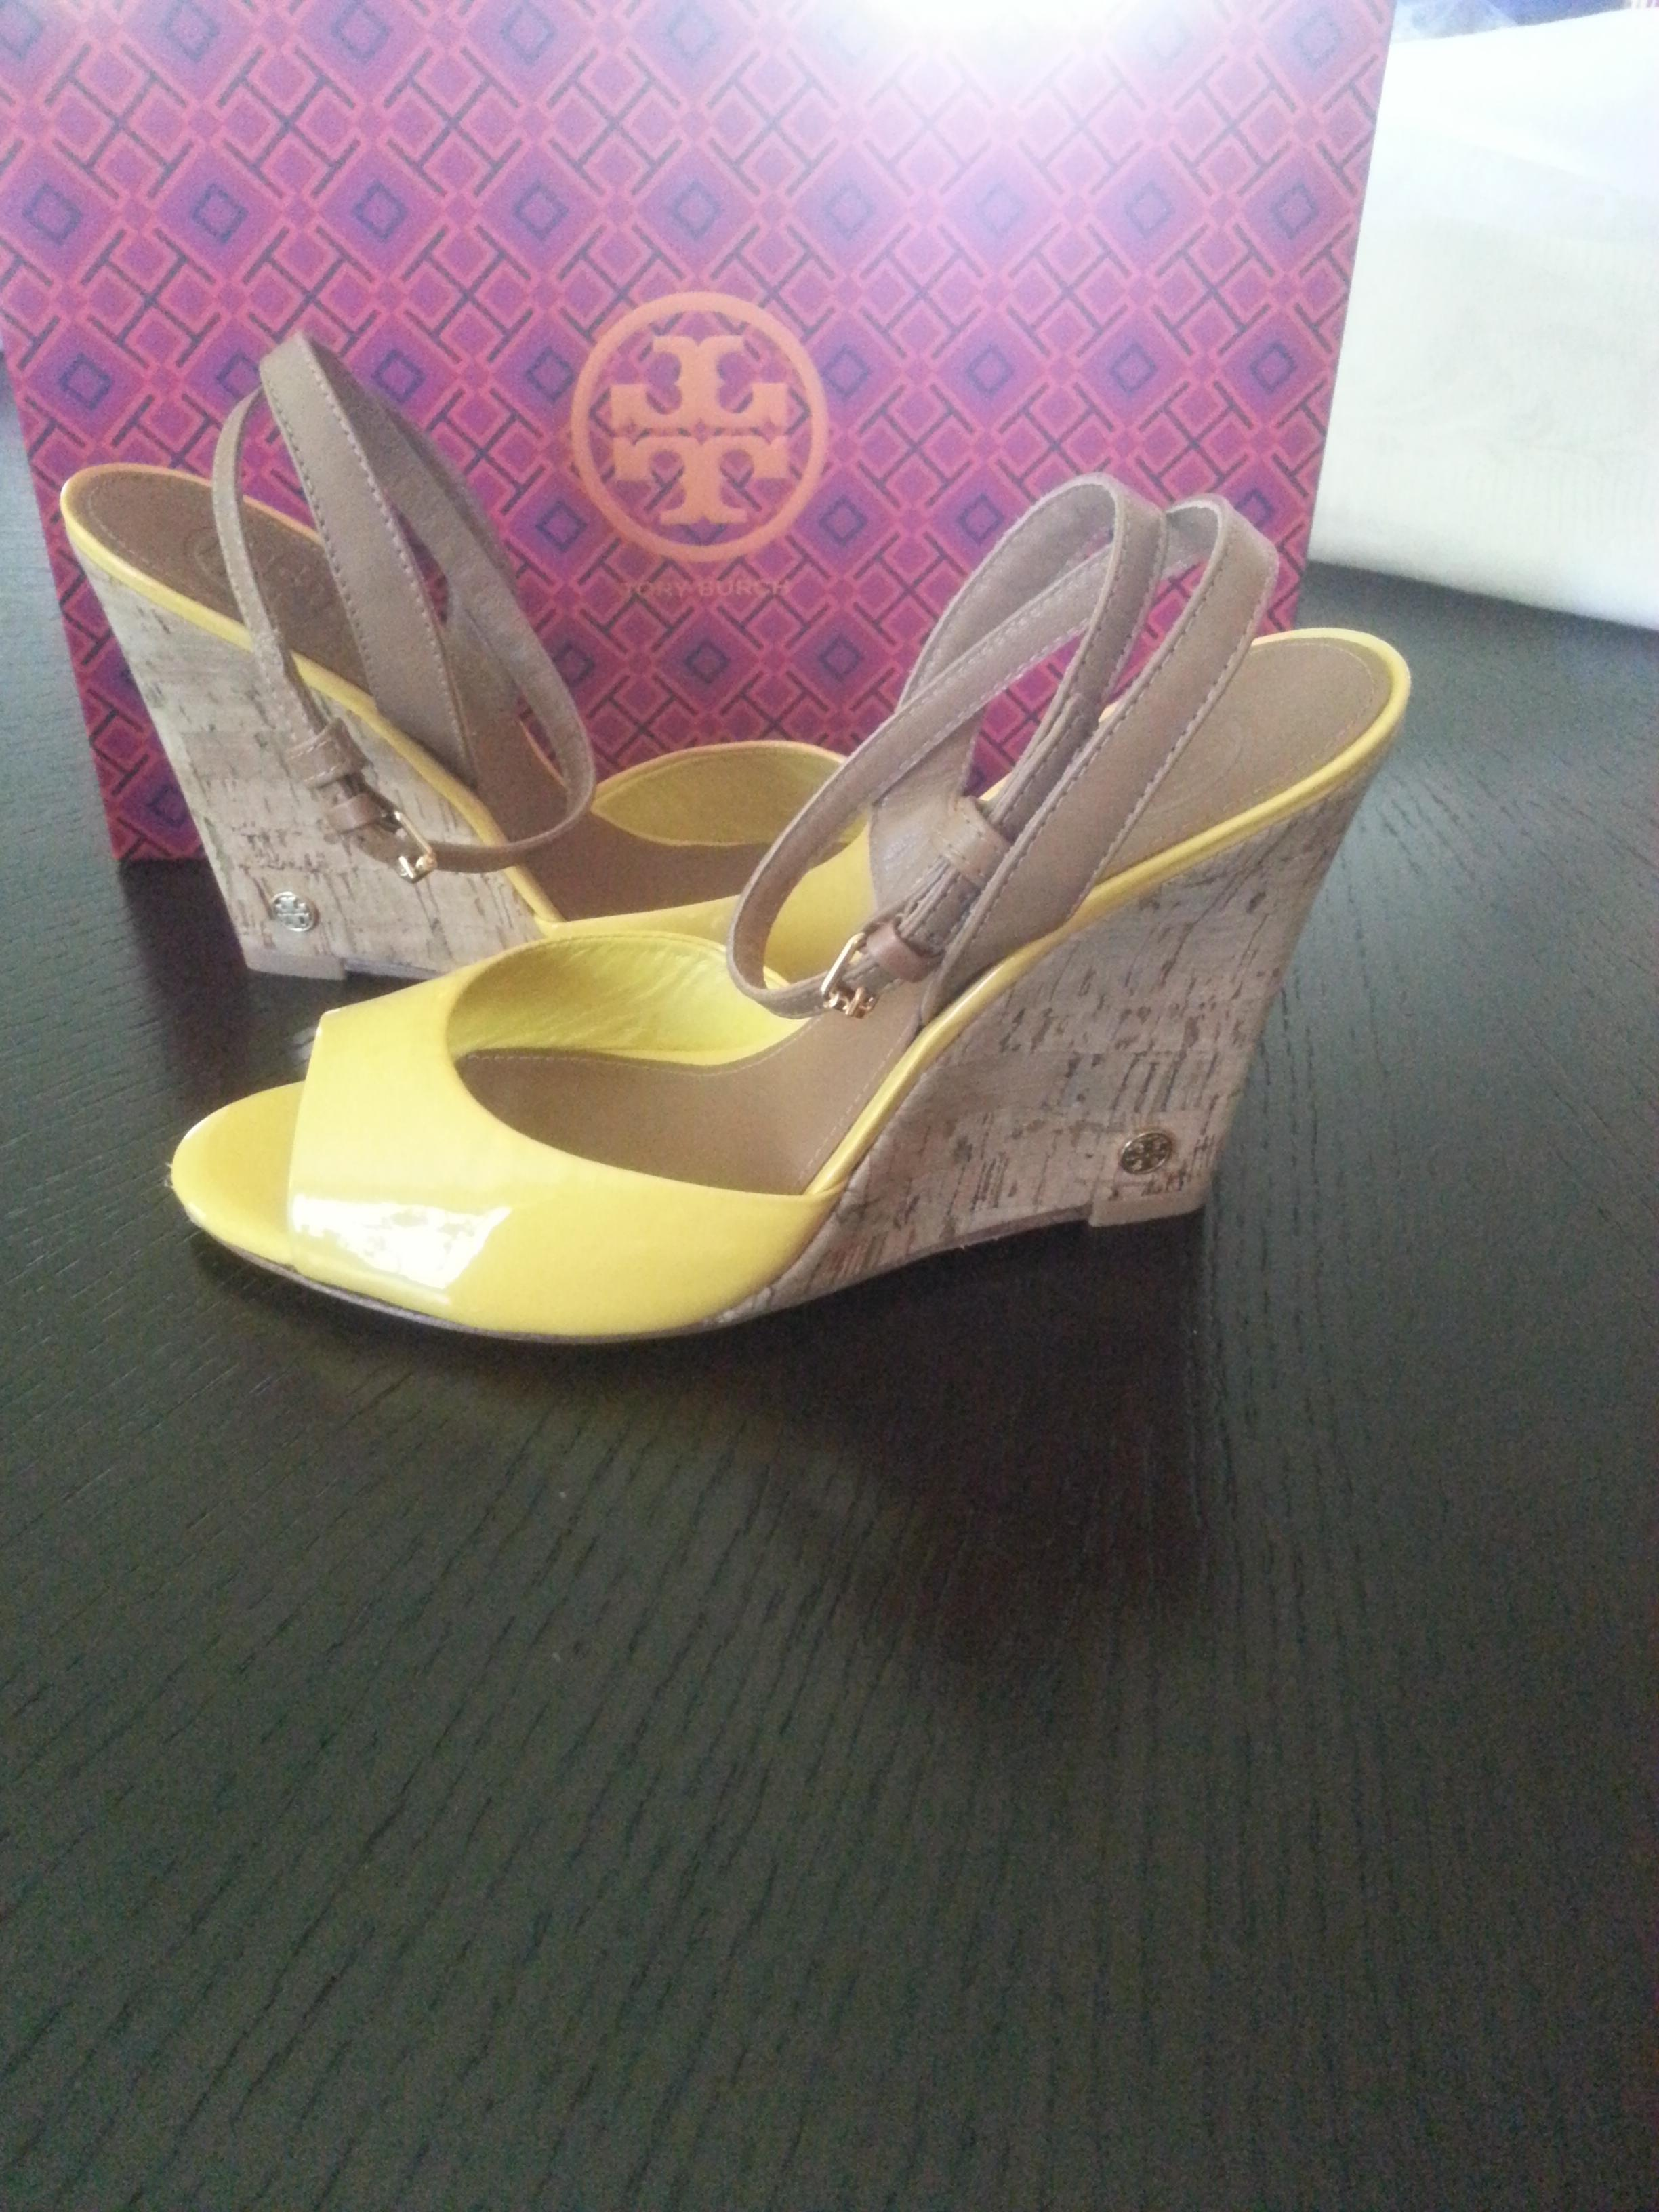 0ce37e24e ... Tory Burch Burch Burch Yellow Ashton Sandals Size US 8 Regular (M